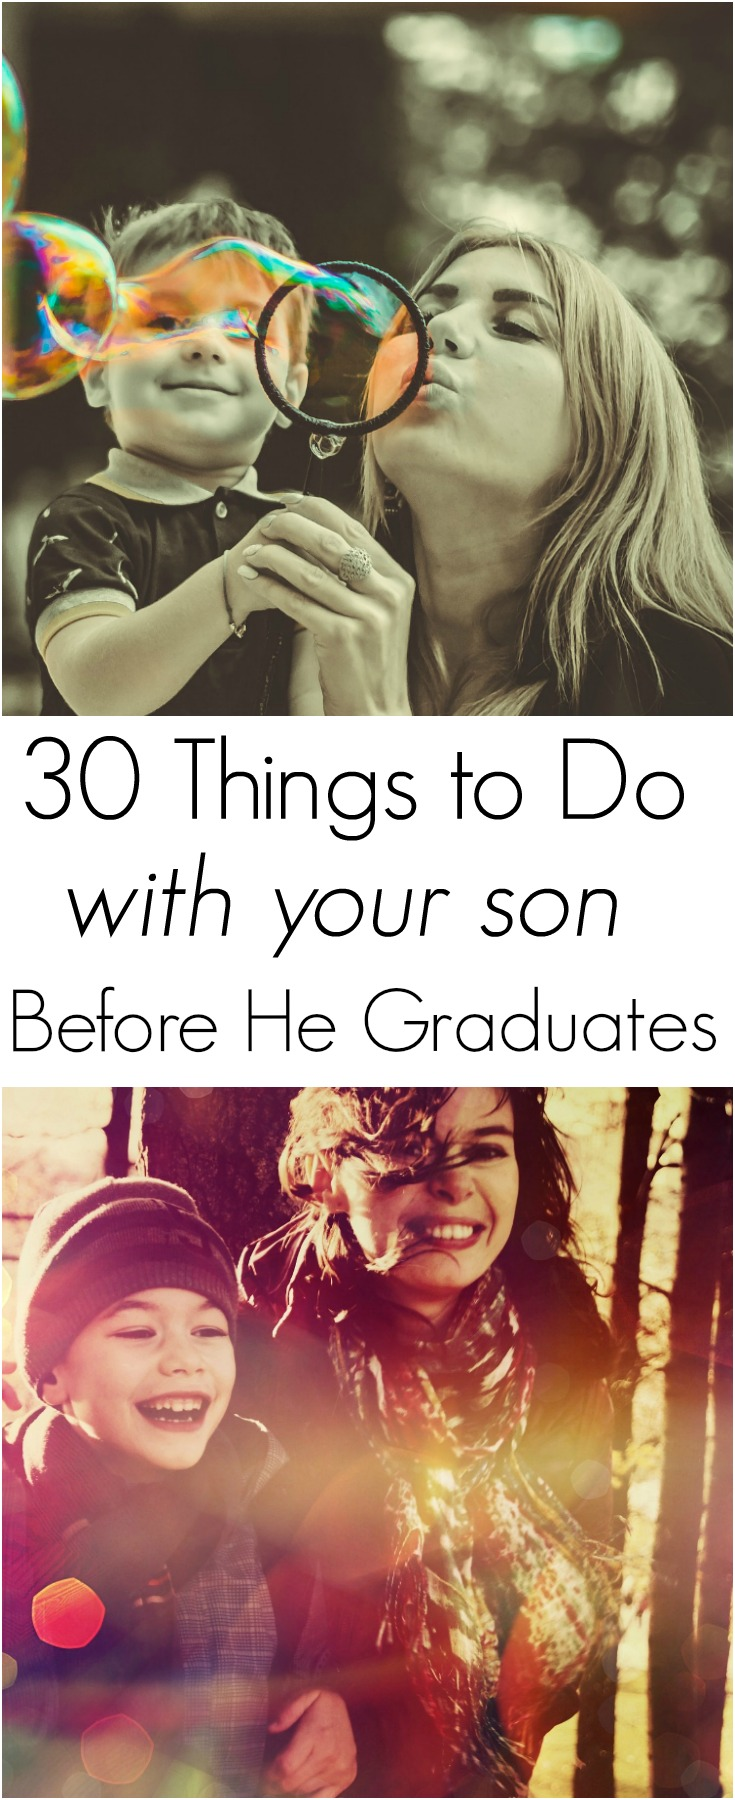 It's hard to believe that time passes by so quickly. Before time slips away from you, here are 30 things to do with your son before he graduates.